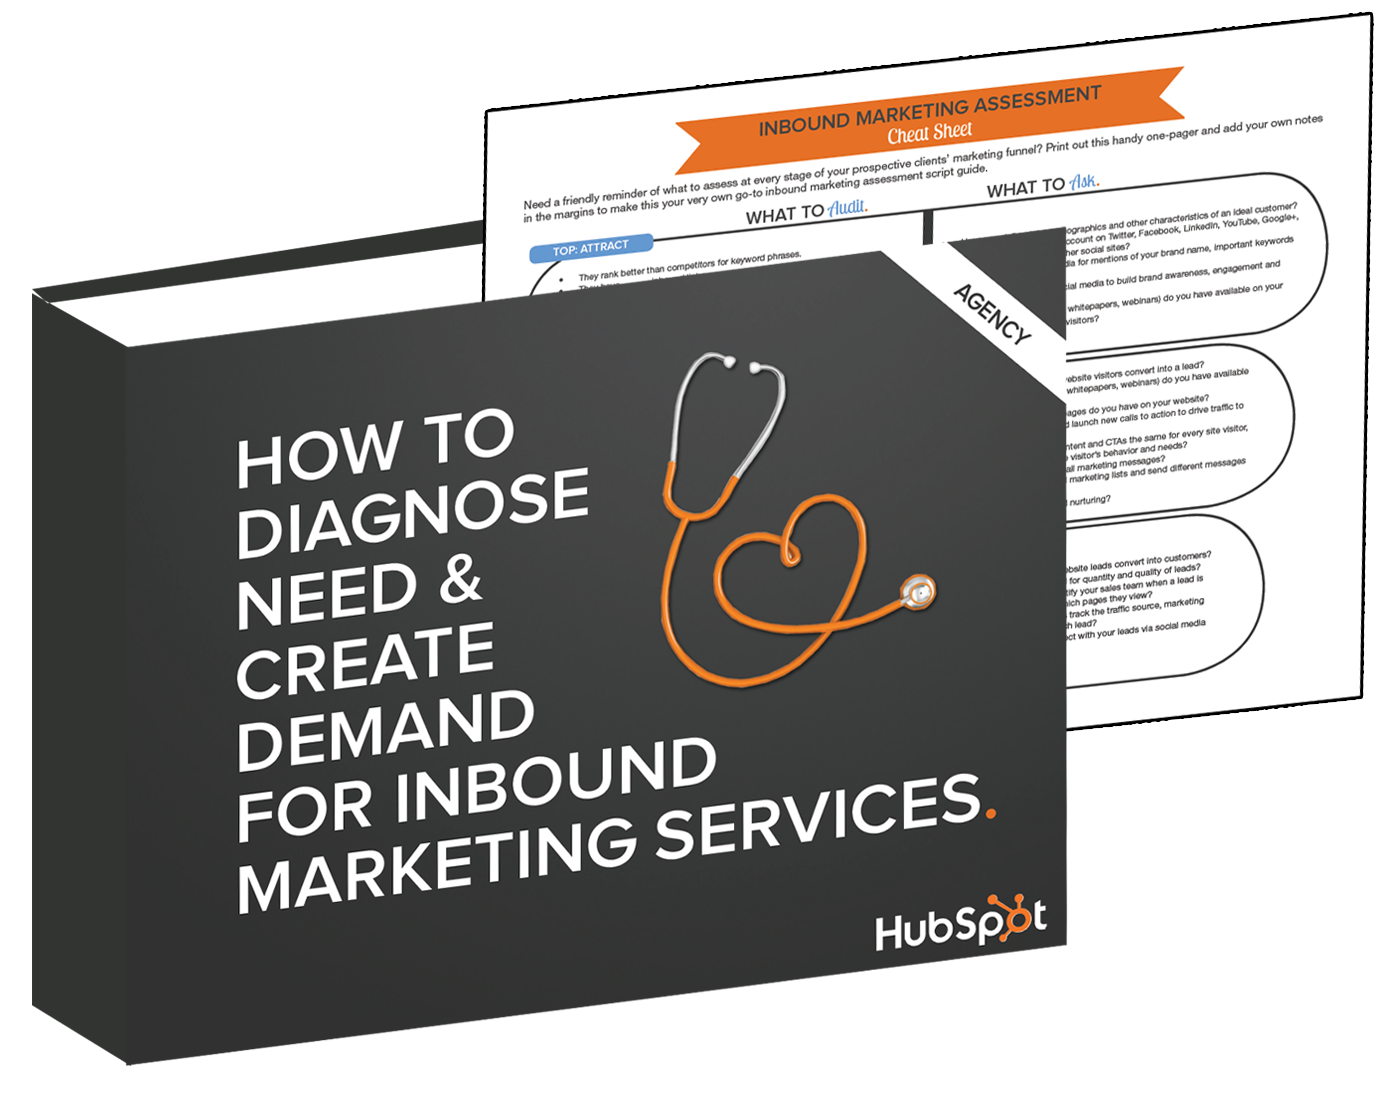 how-to-diagnose-need-and-create-demand-for-inbound-services